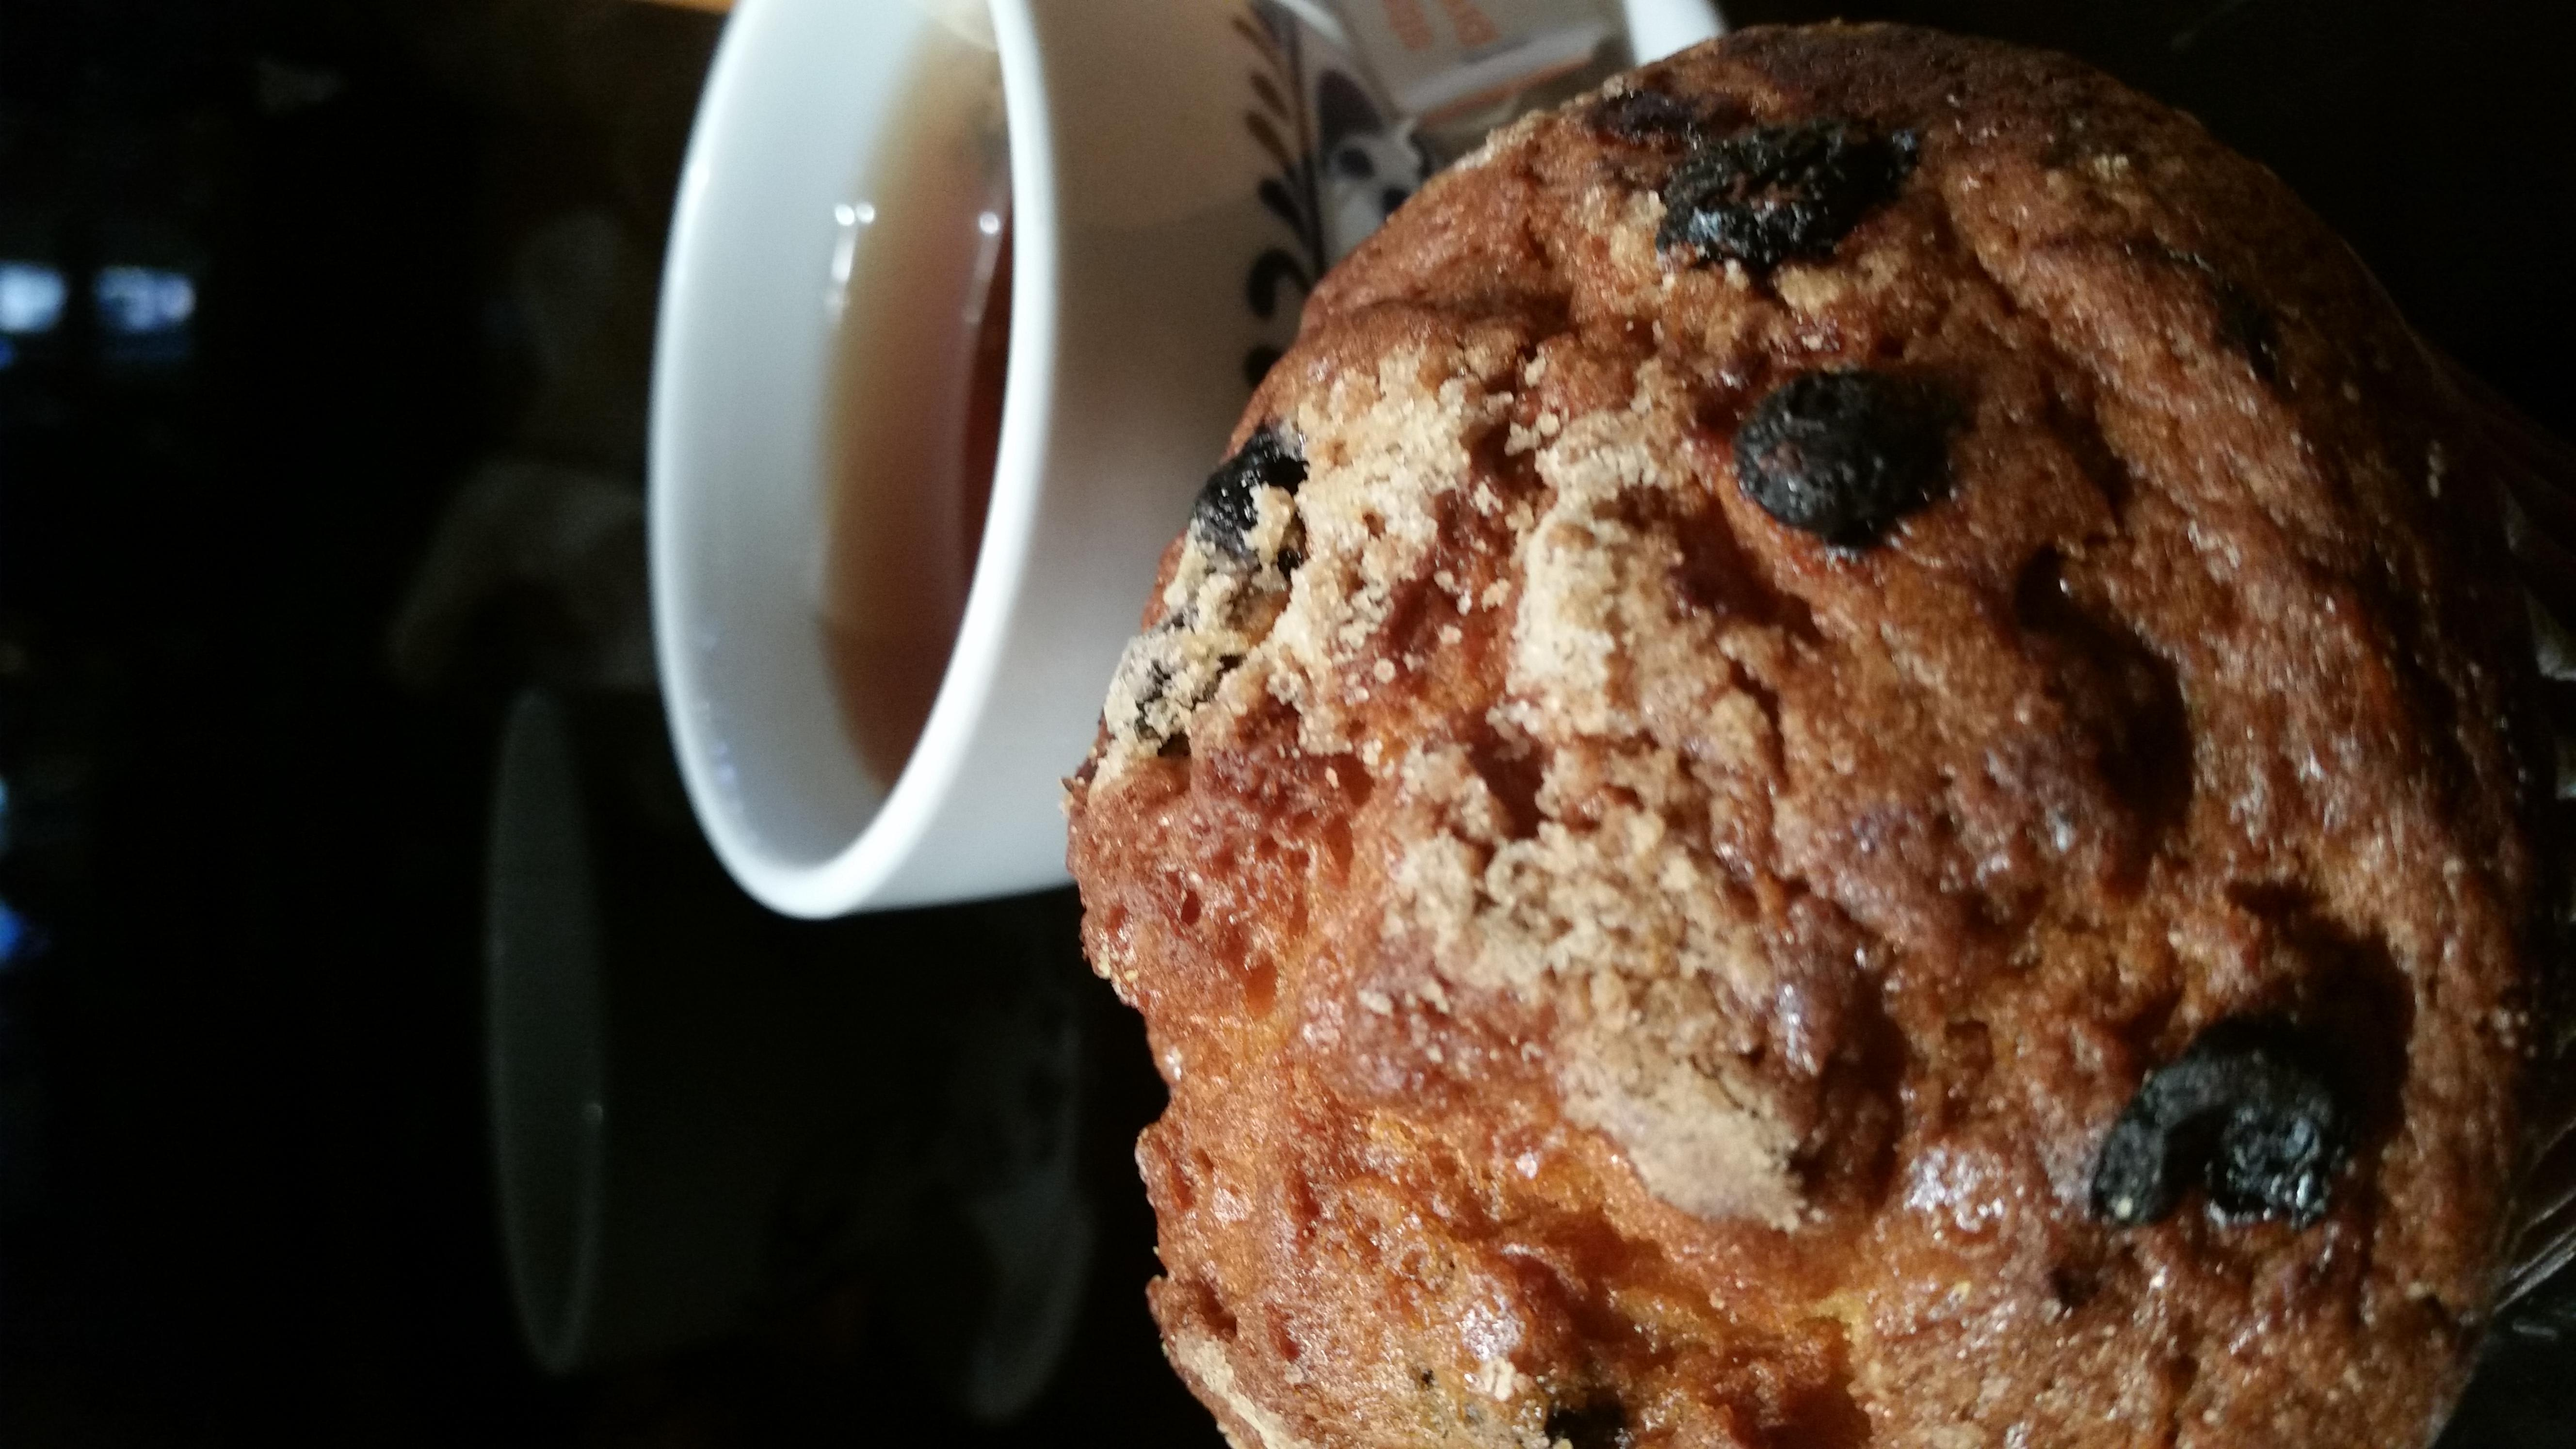 Cup of Tea and Blueberry Muffin at South Street Creamery Cafe